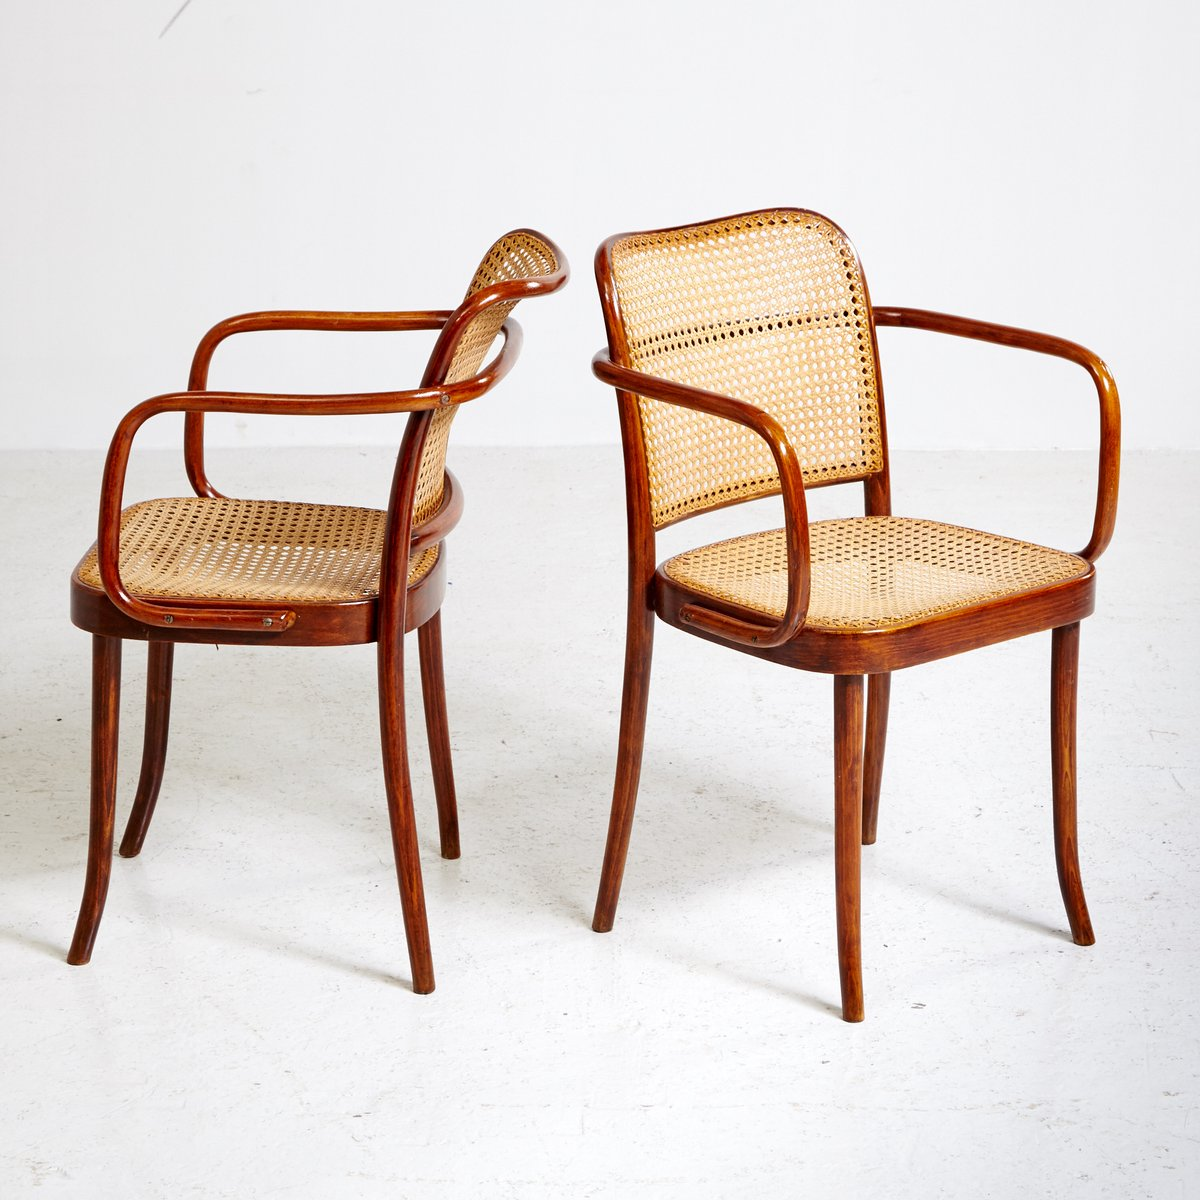 Thonet Jobs Model A811 Armchair By Josef Frank And Josef Hoffmann For Thonet 1920s